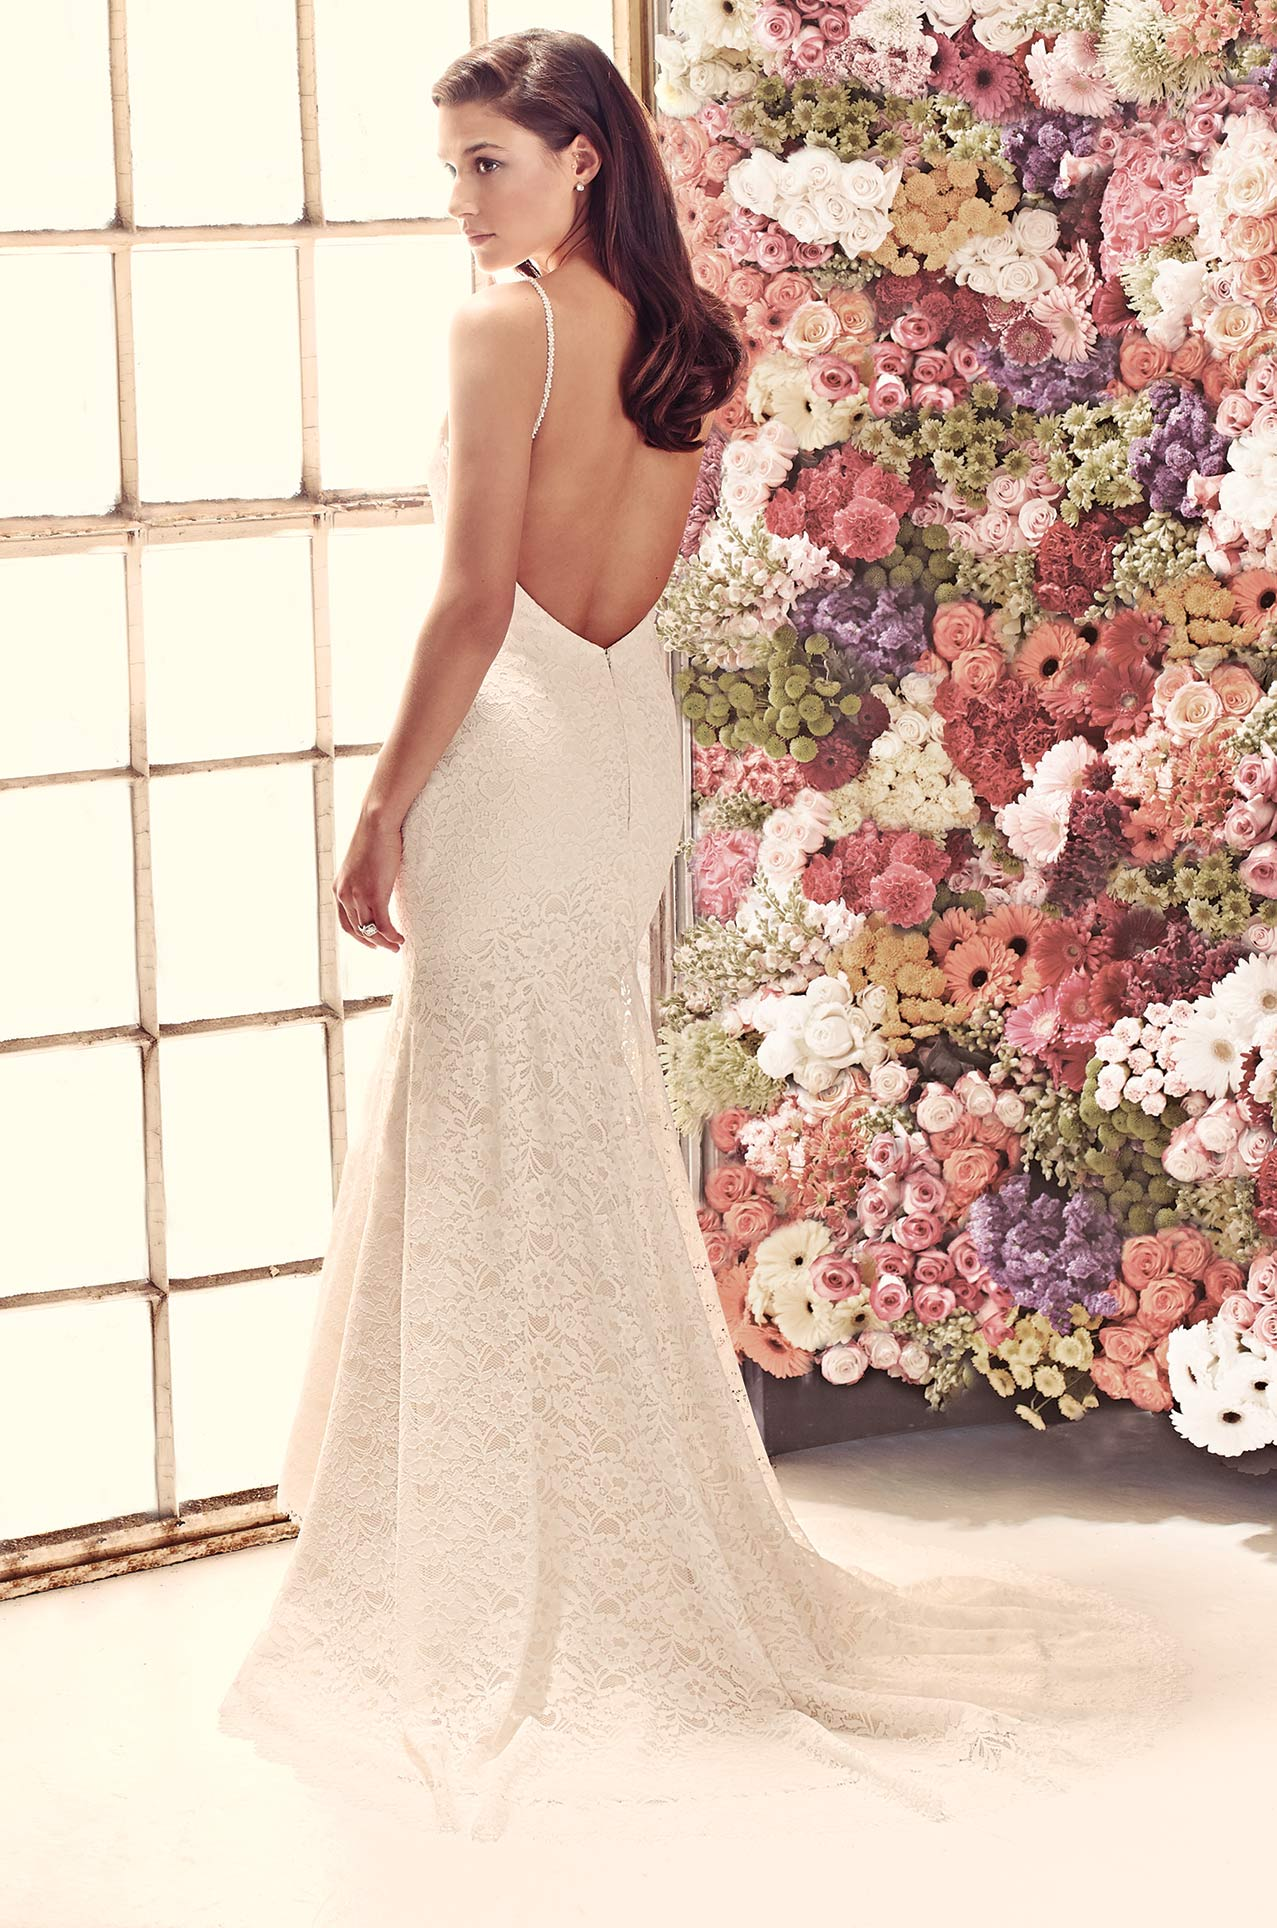 5 Tips When Ping For Your Wedding Gown